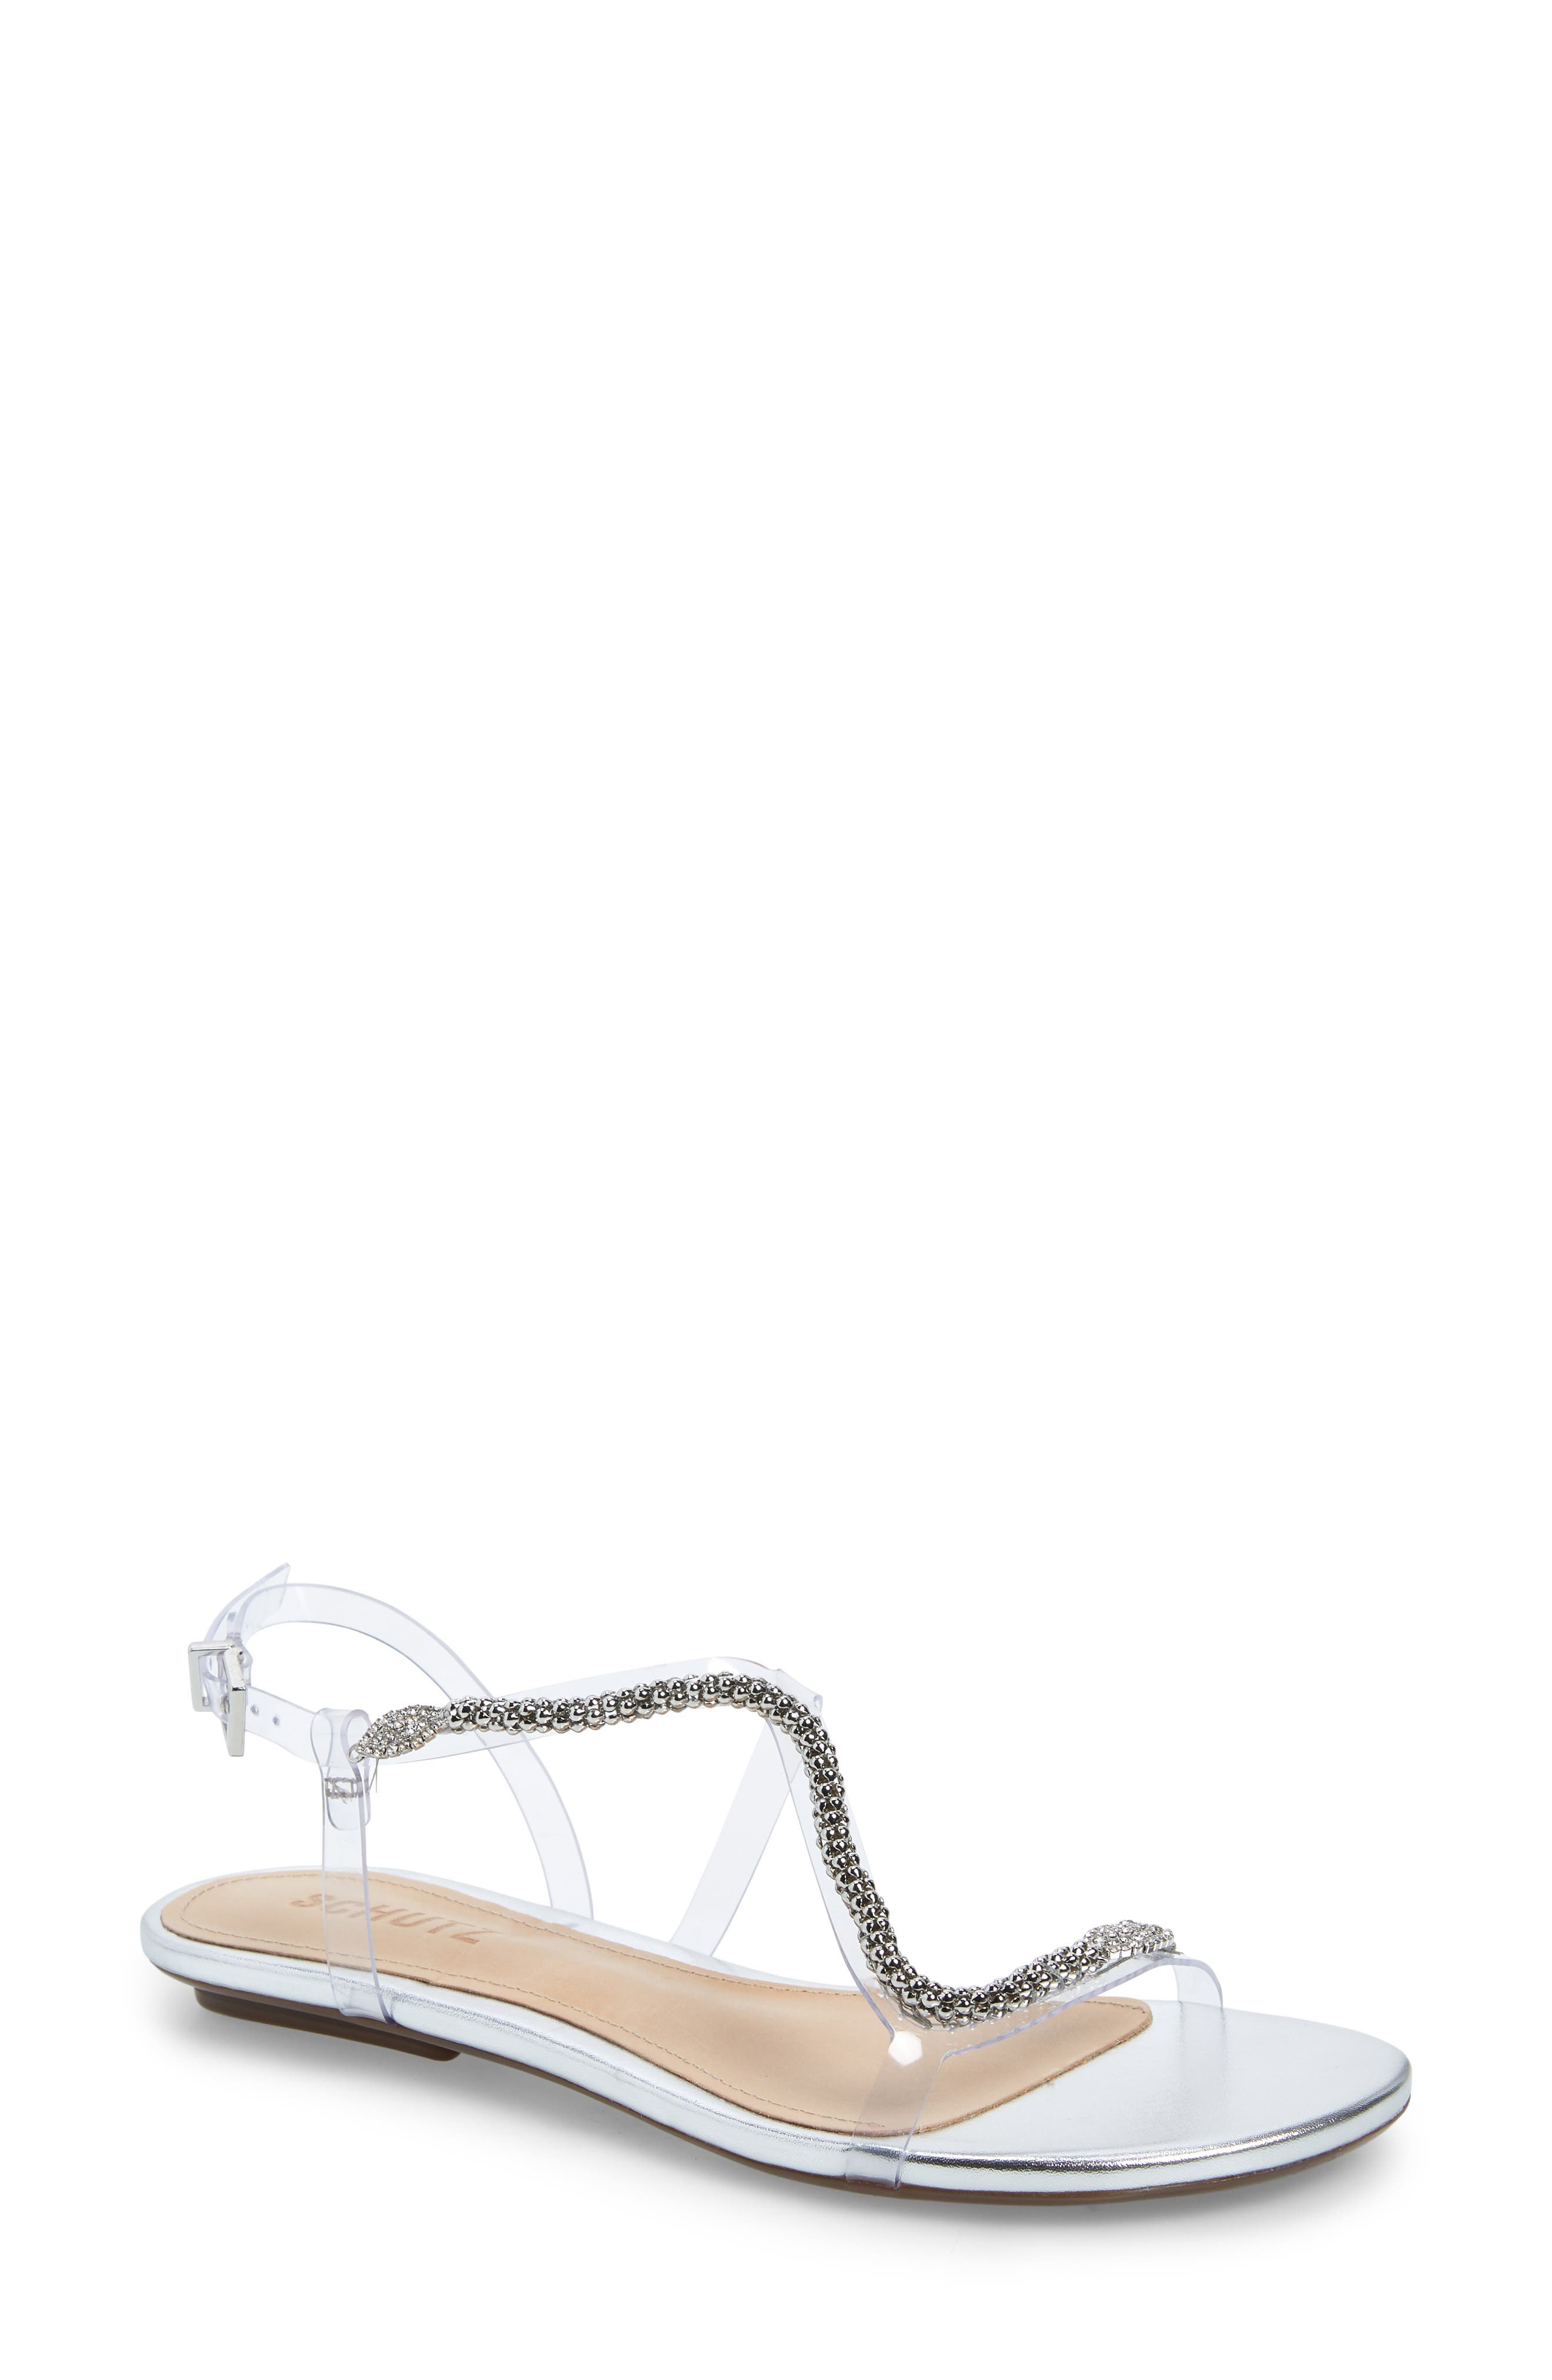 Gabbyl Embellished Sandal,                             Main thumbnail 1, color,                             PRATA